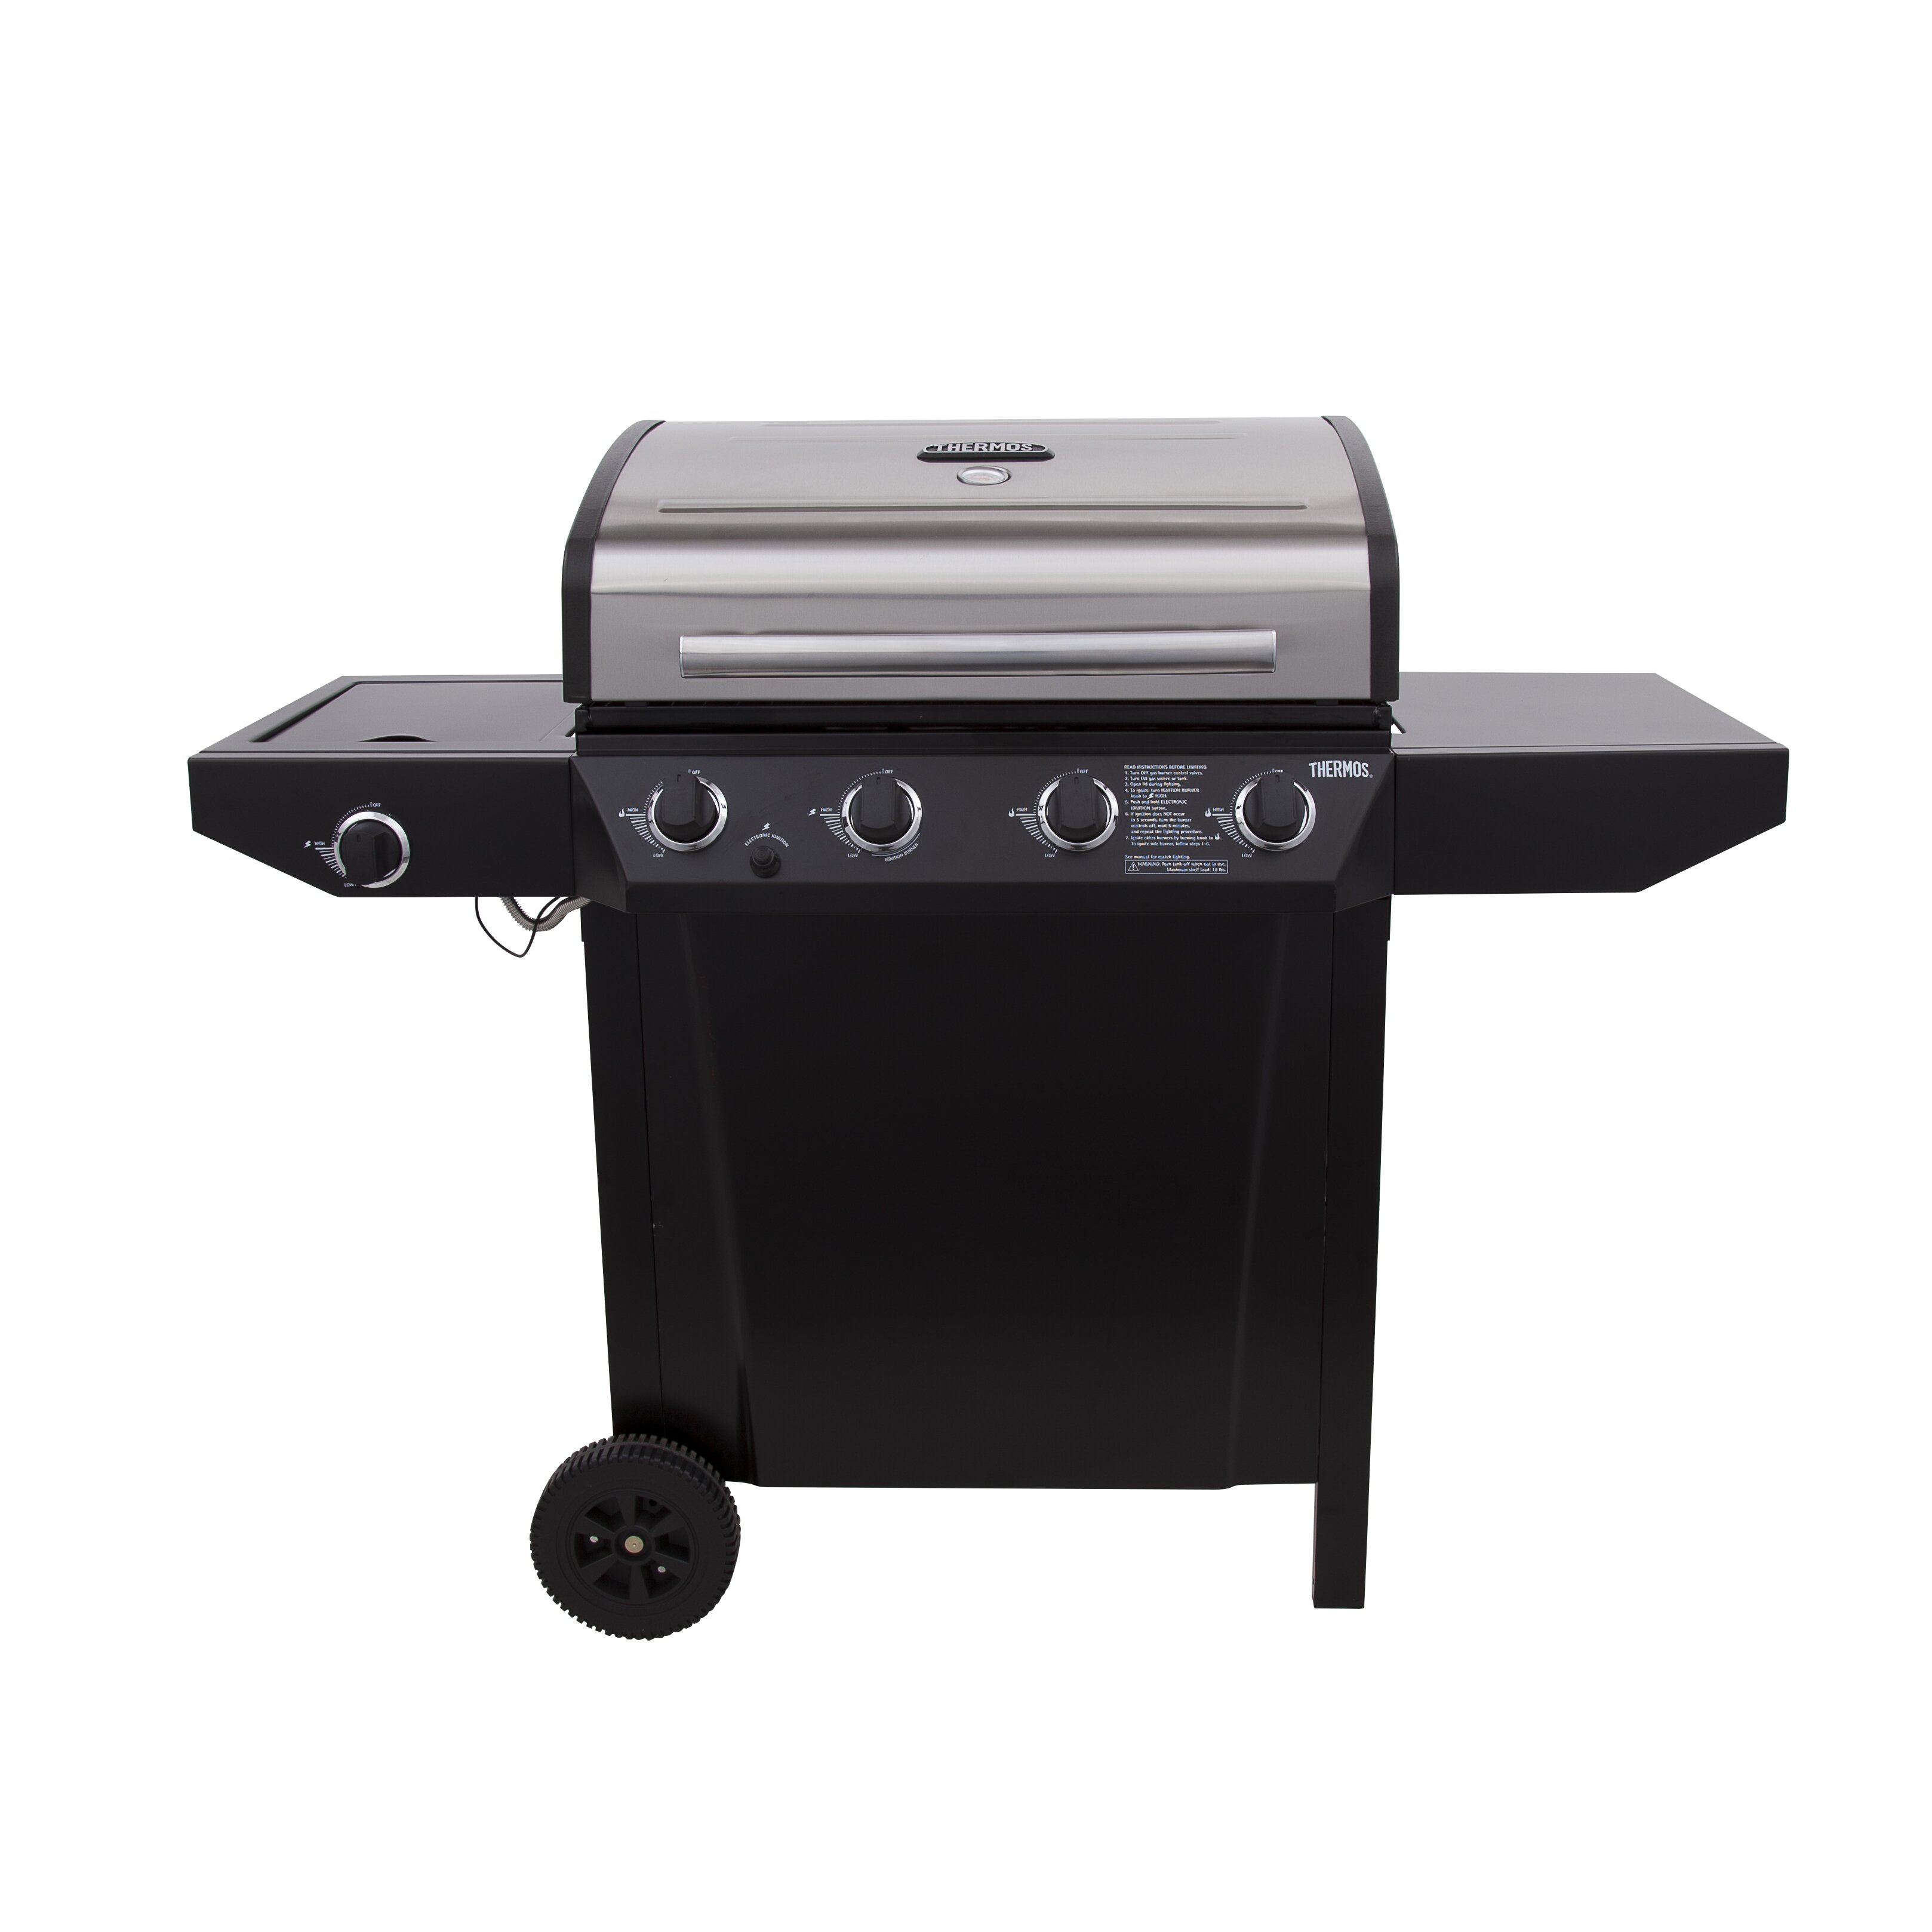 Sides On The Grill: CharBroil Thermos 4 Burner Gas Grill With Side Burner